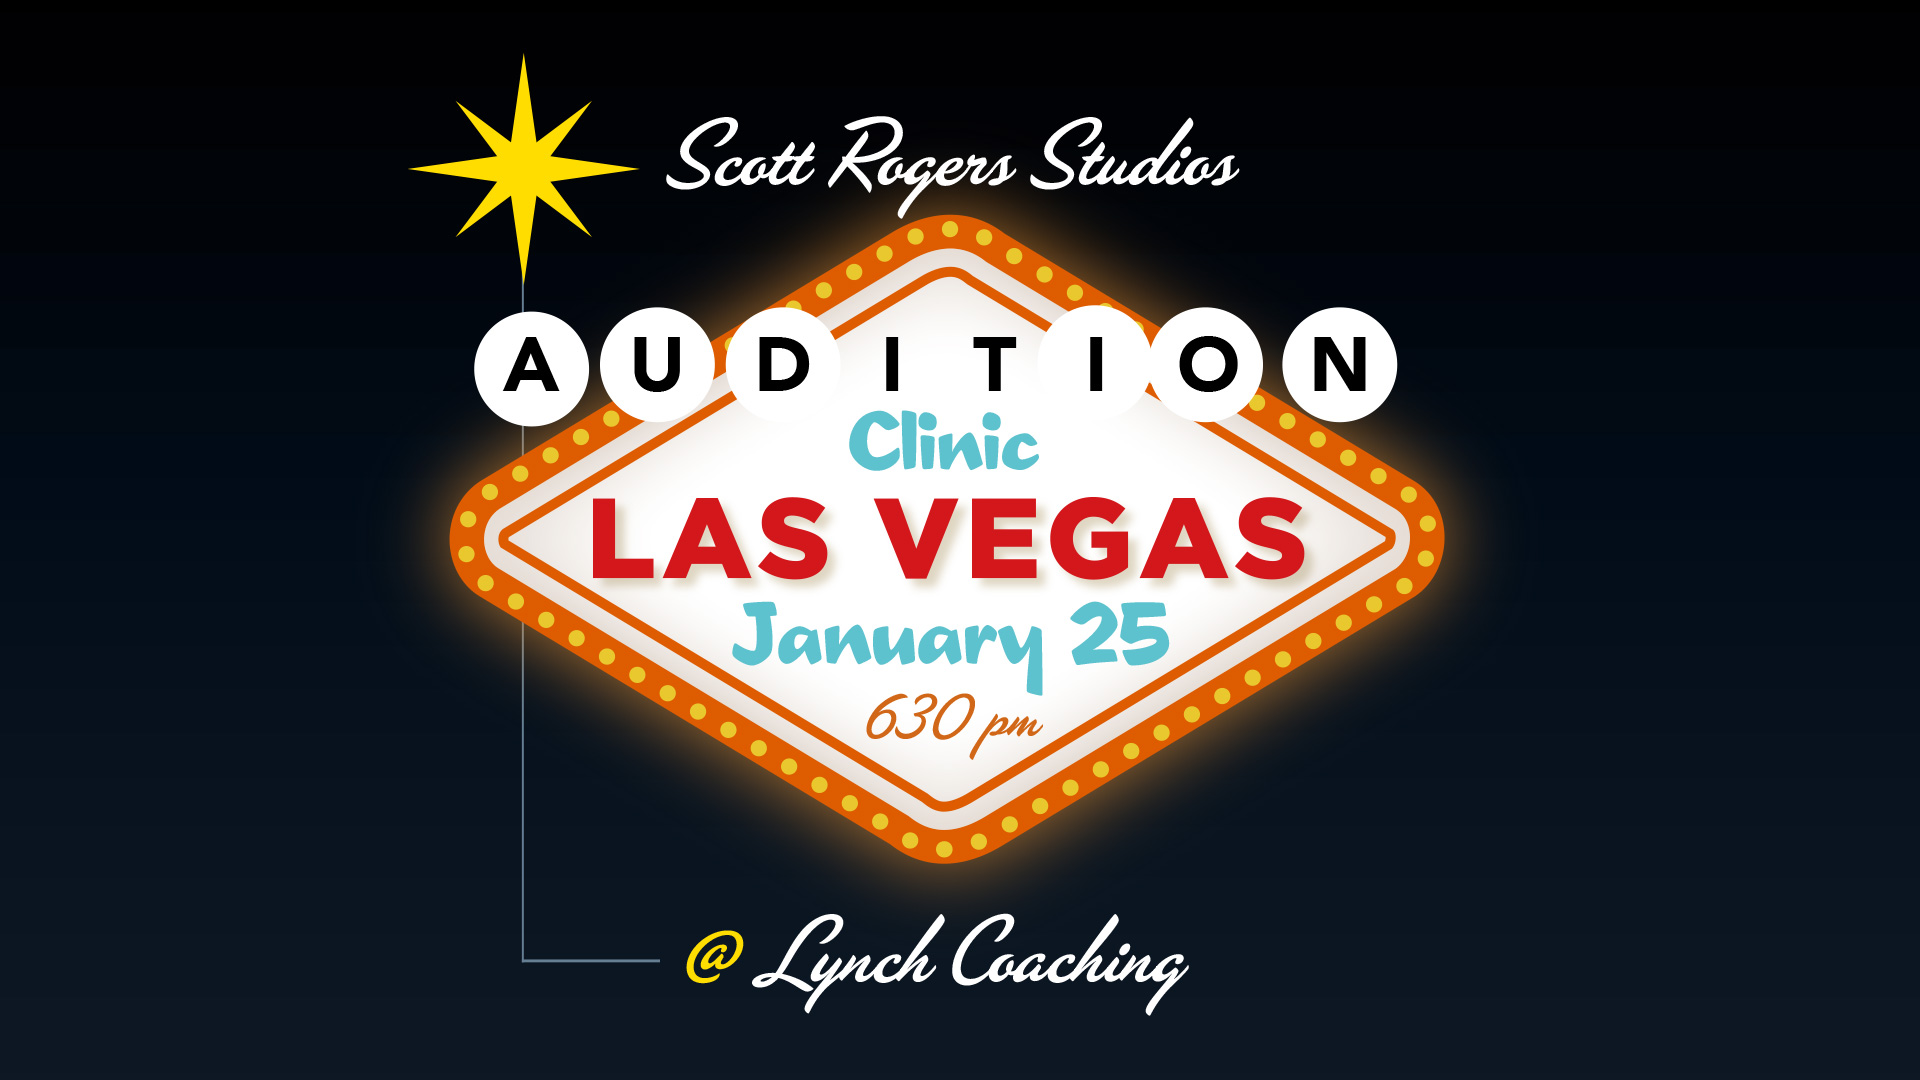 SRS Las Vegas Audition Clinic / January 25